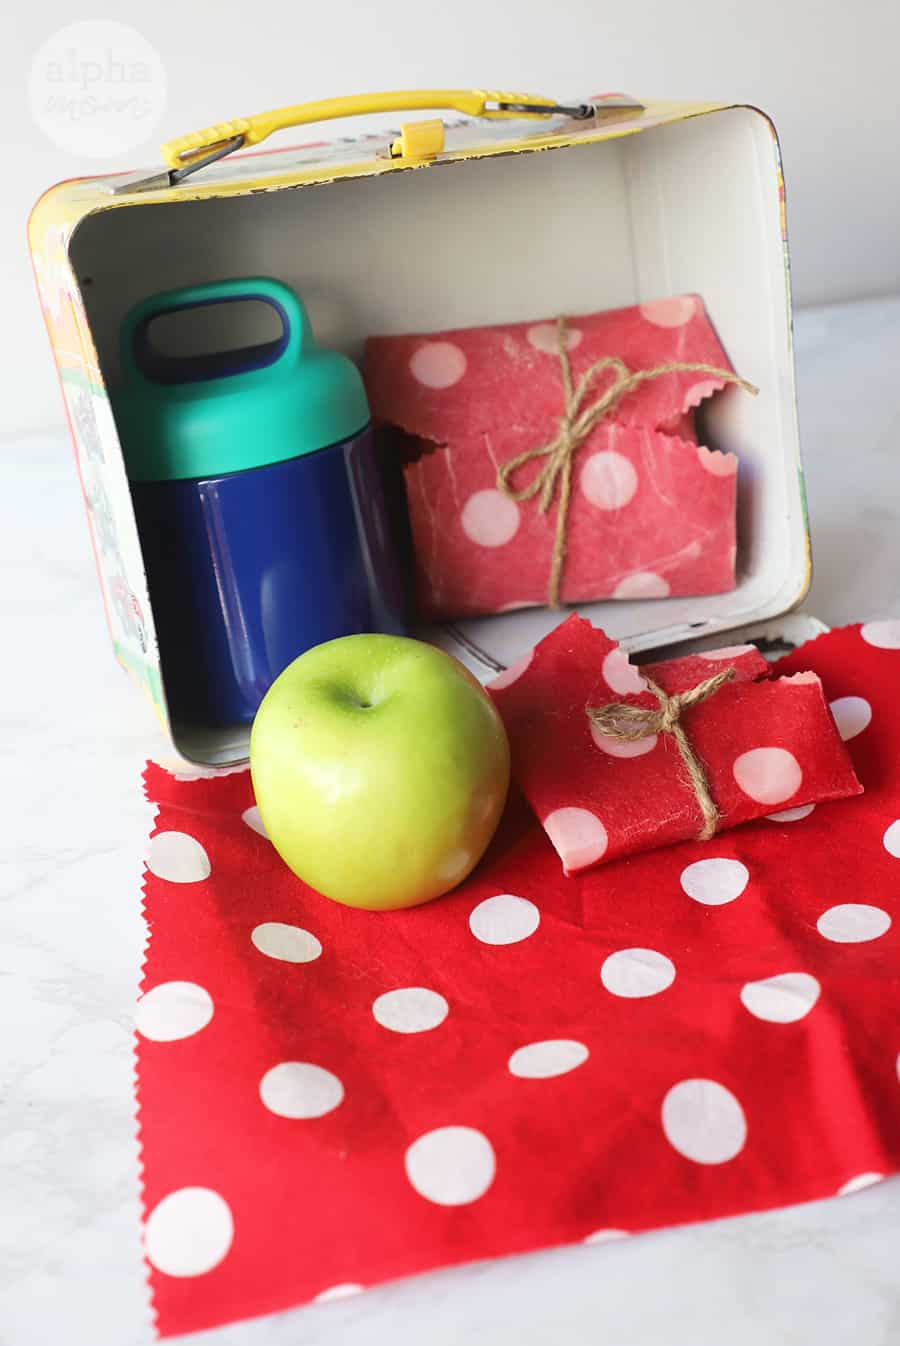 Waxed-Fabric Food Wrap apple and food container in open vintage lunchbox